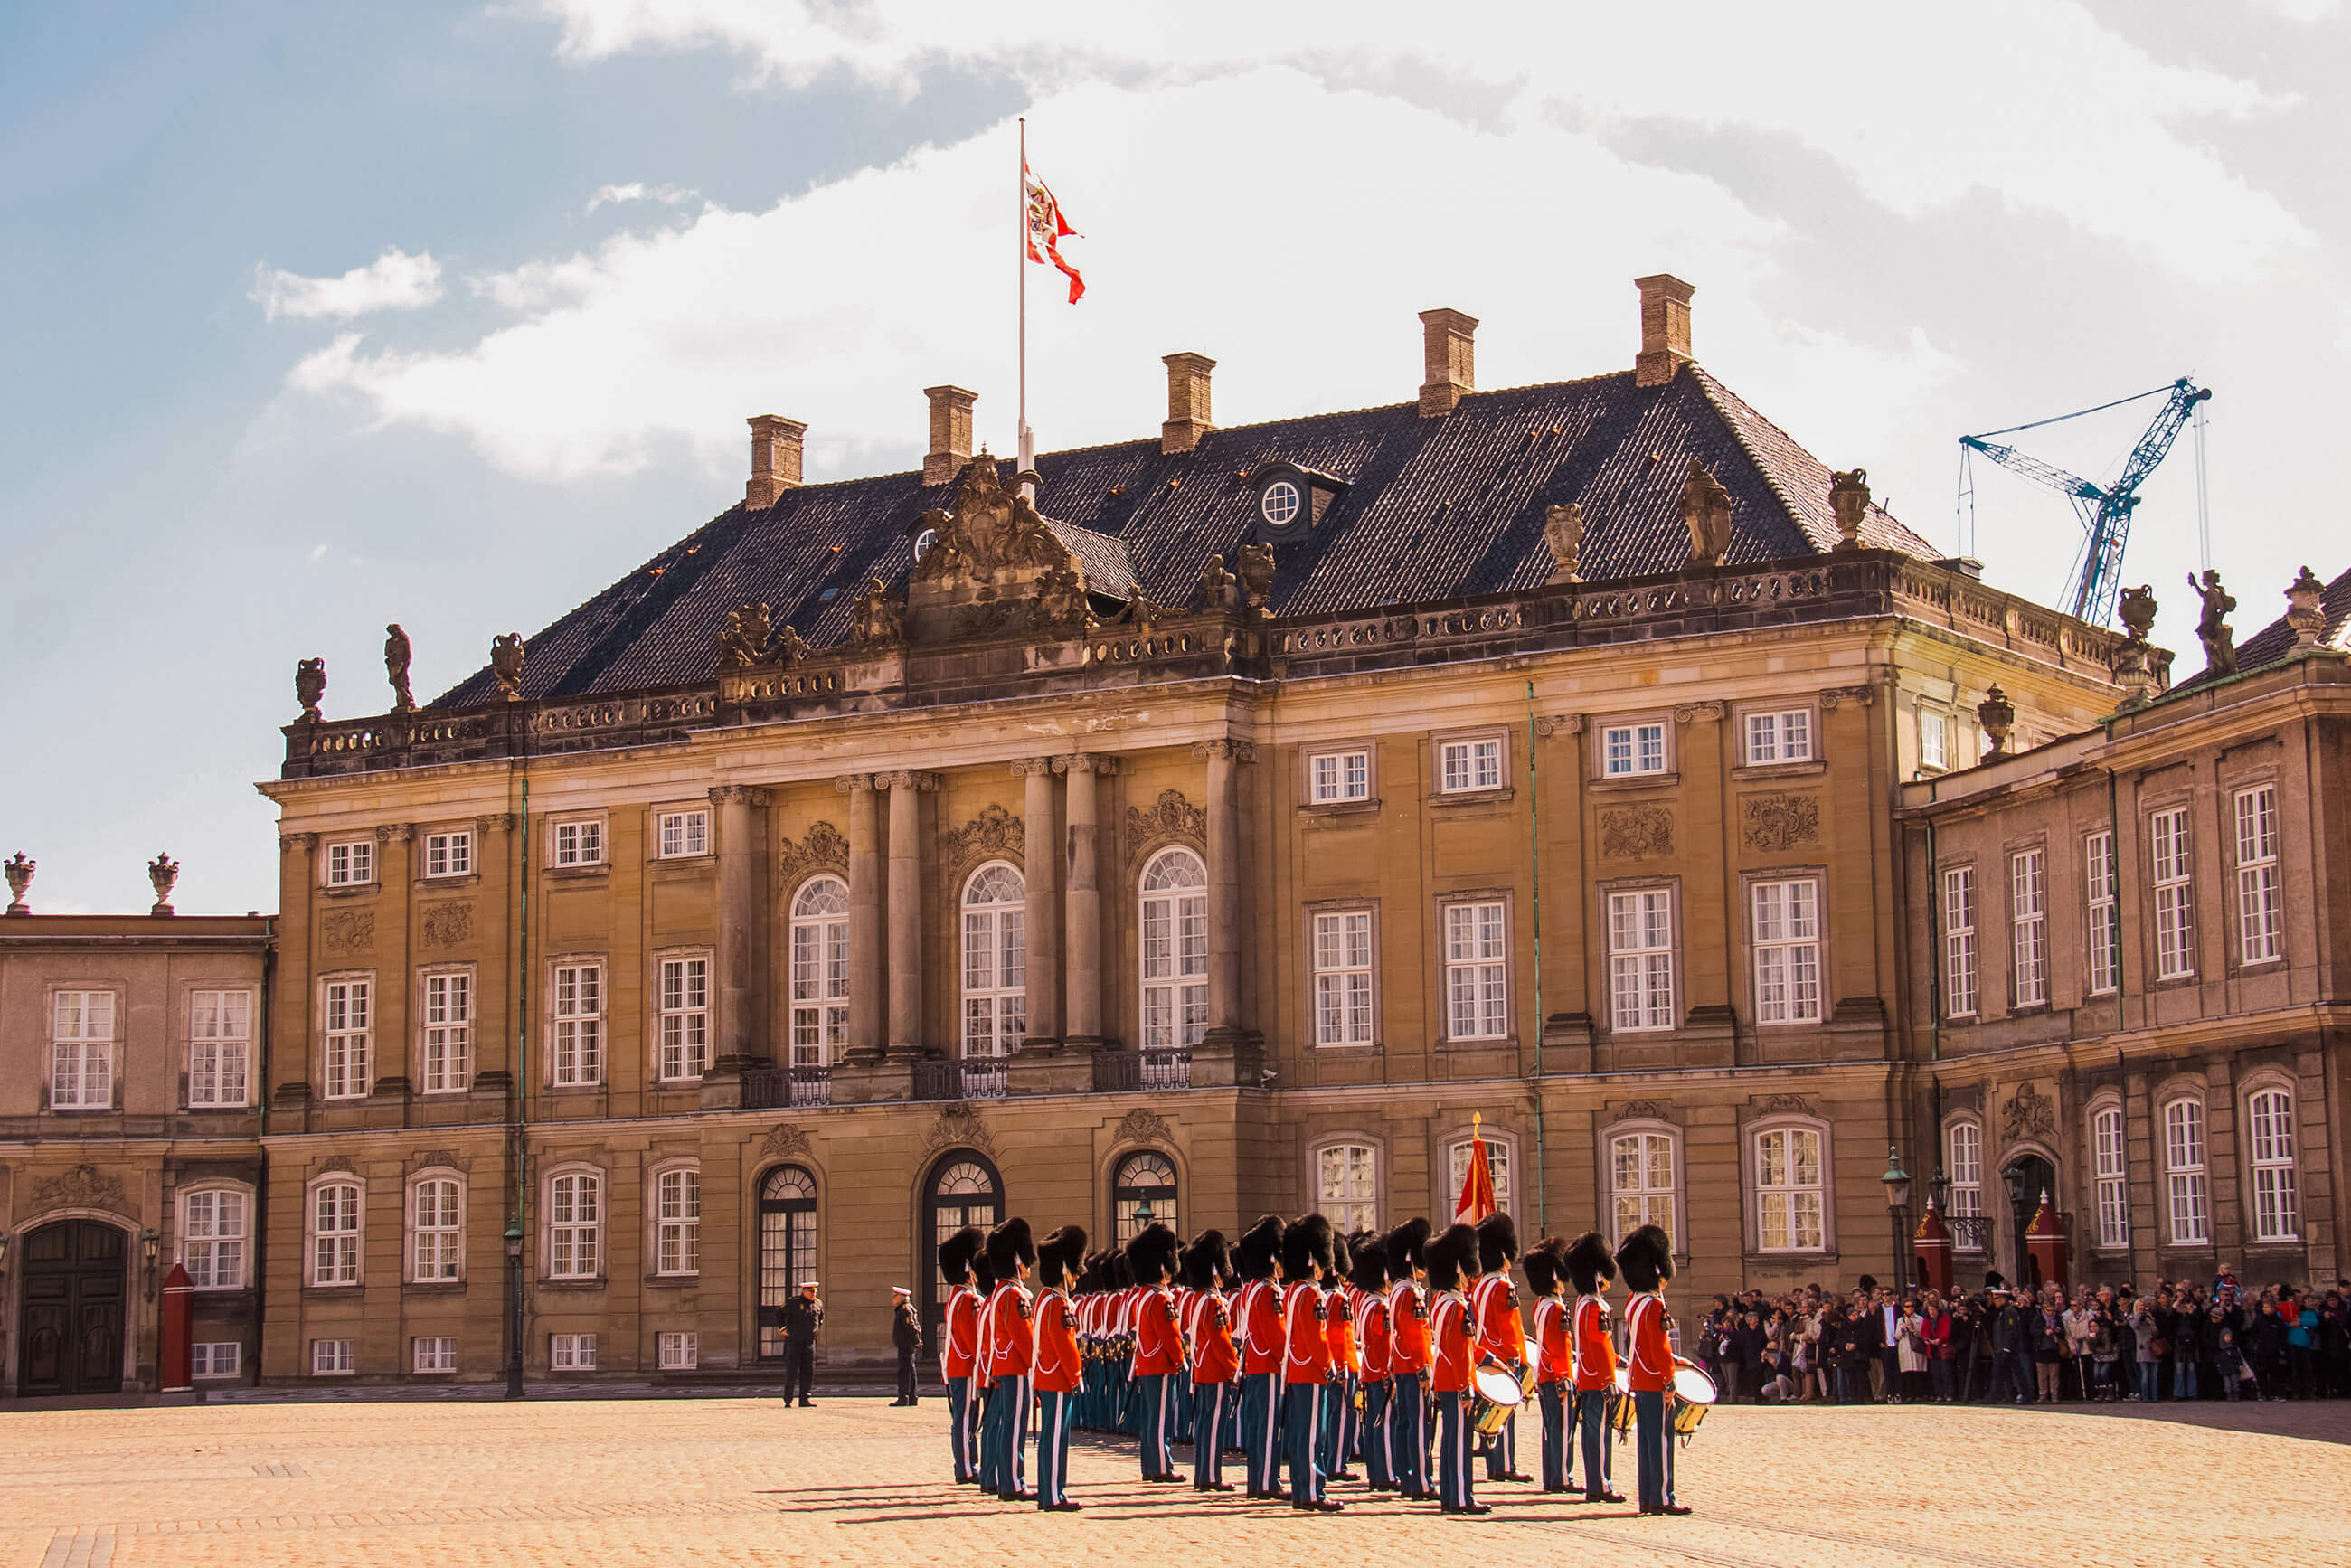 https://bubo.sk/uploads/galleries/5038/amalienborg-2497617-9.jpg